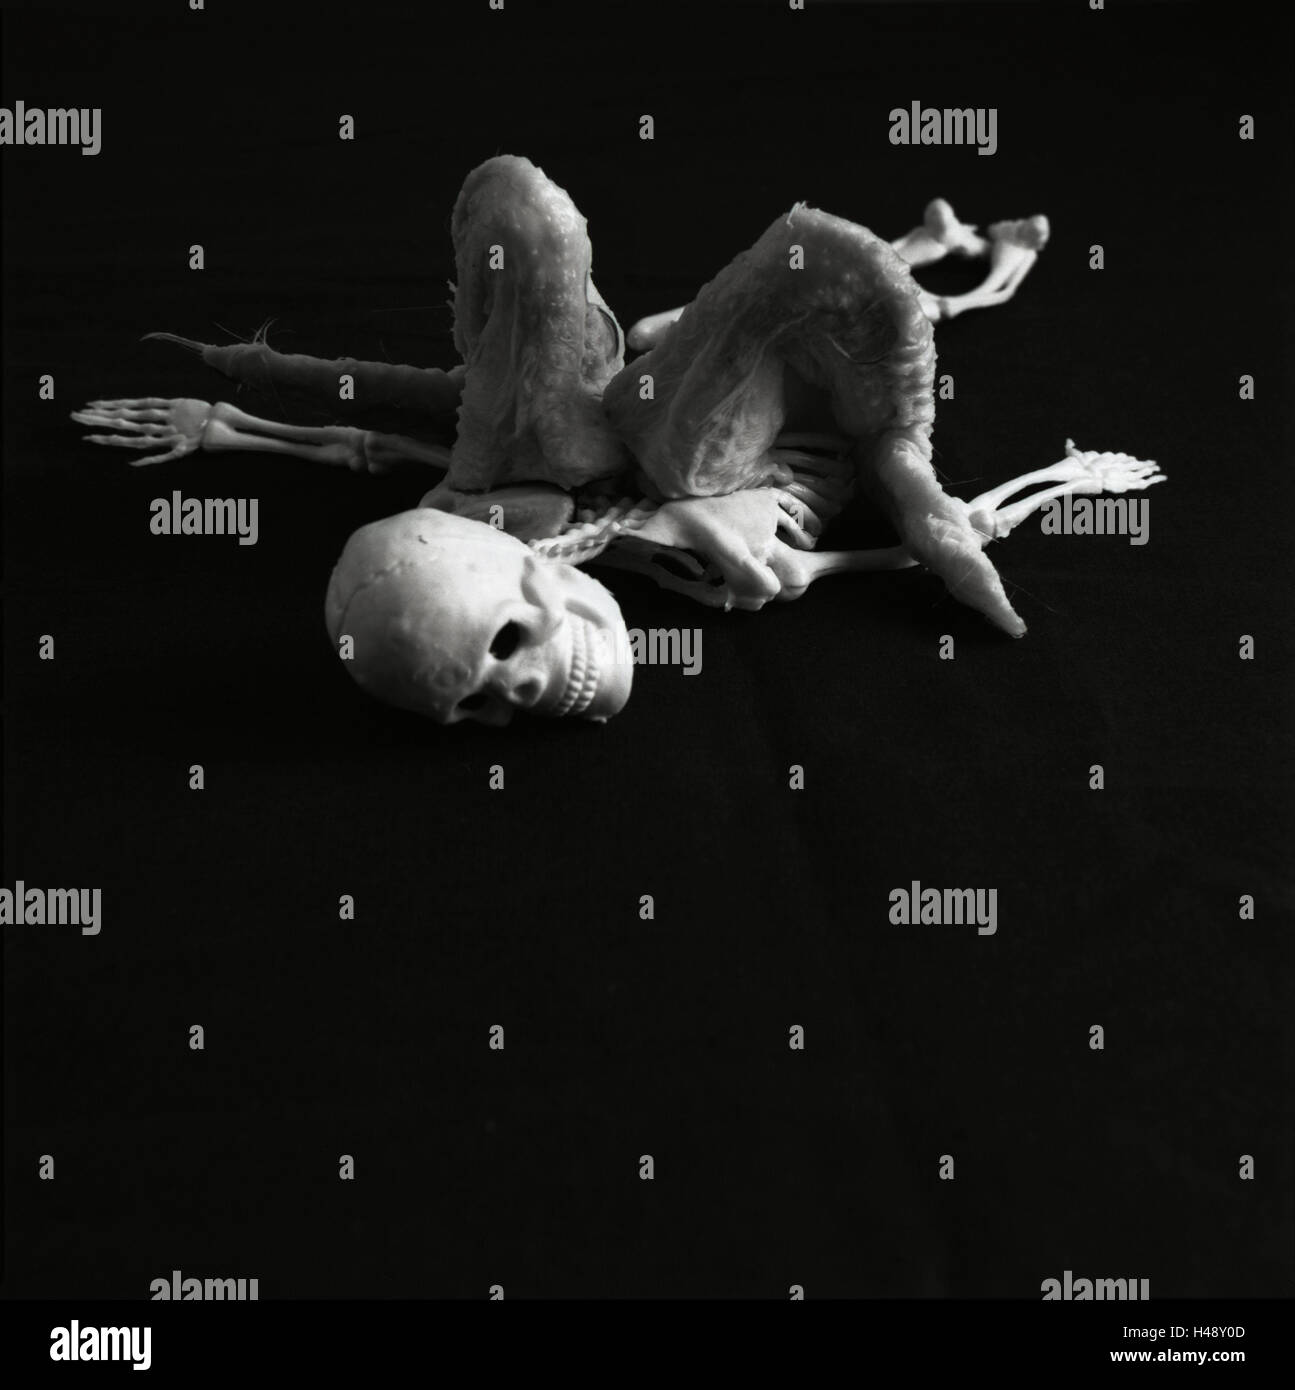 Elastic skeleton, poultry wing, plucked, raw, lie, 'fallen angel', b/w, toys, toys skeleton, skeleton, skeleton, - Stock Image